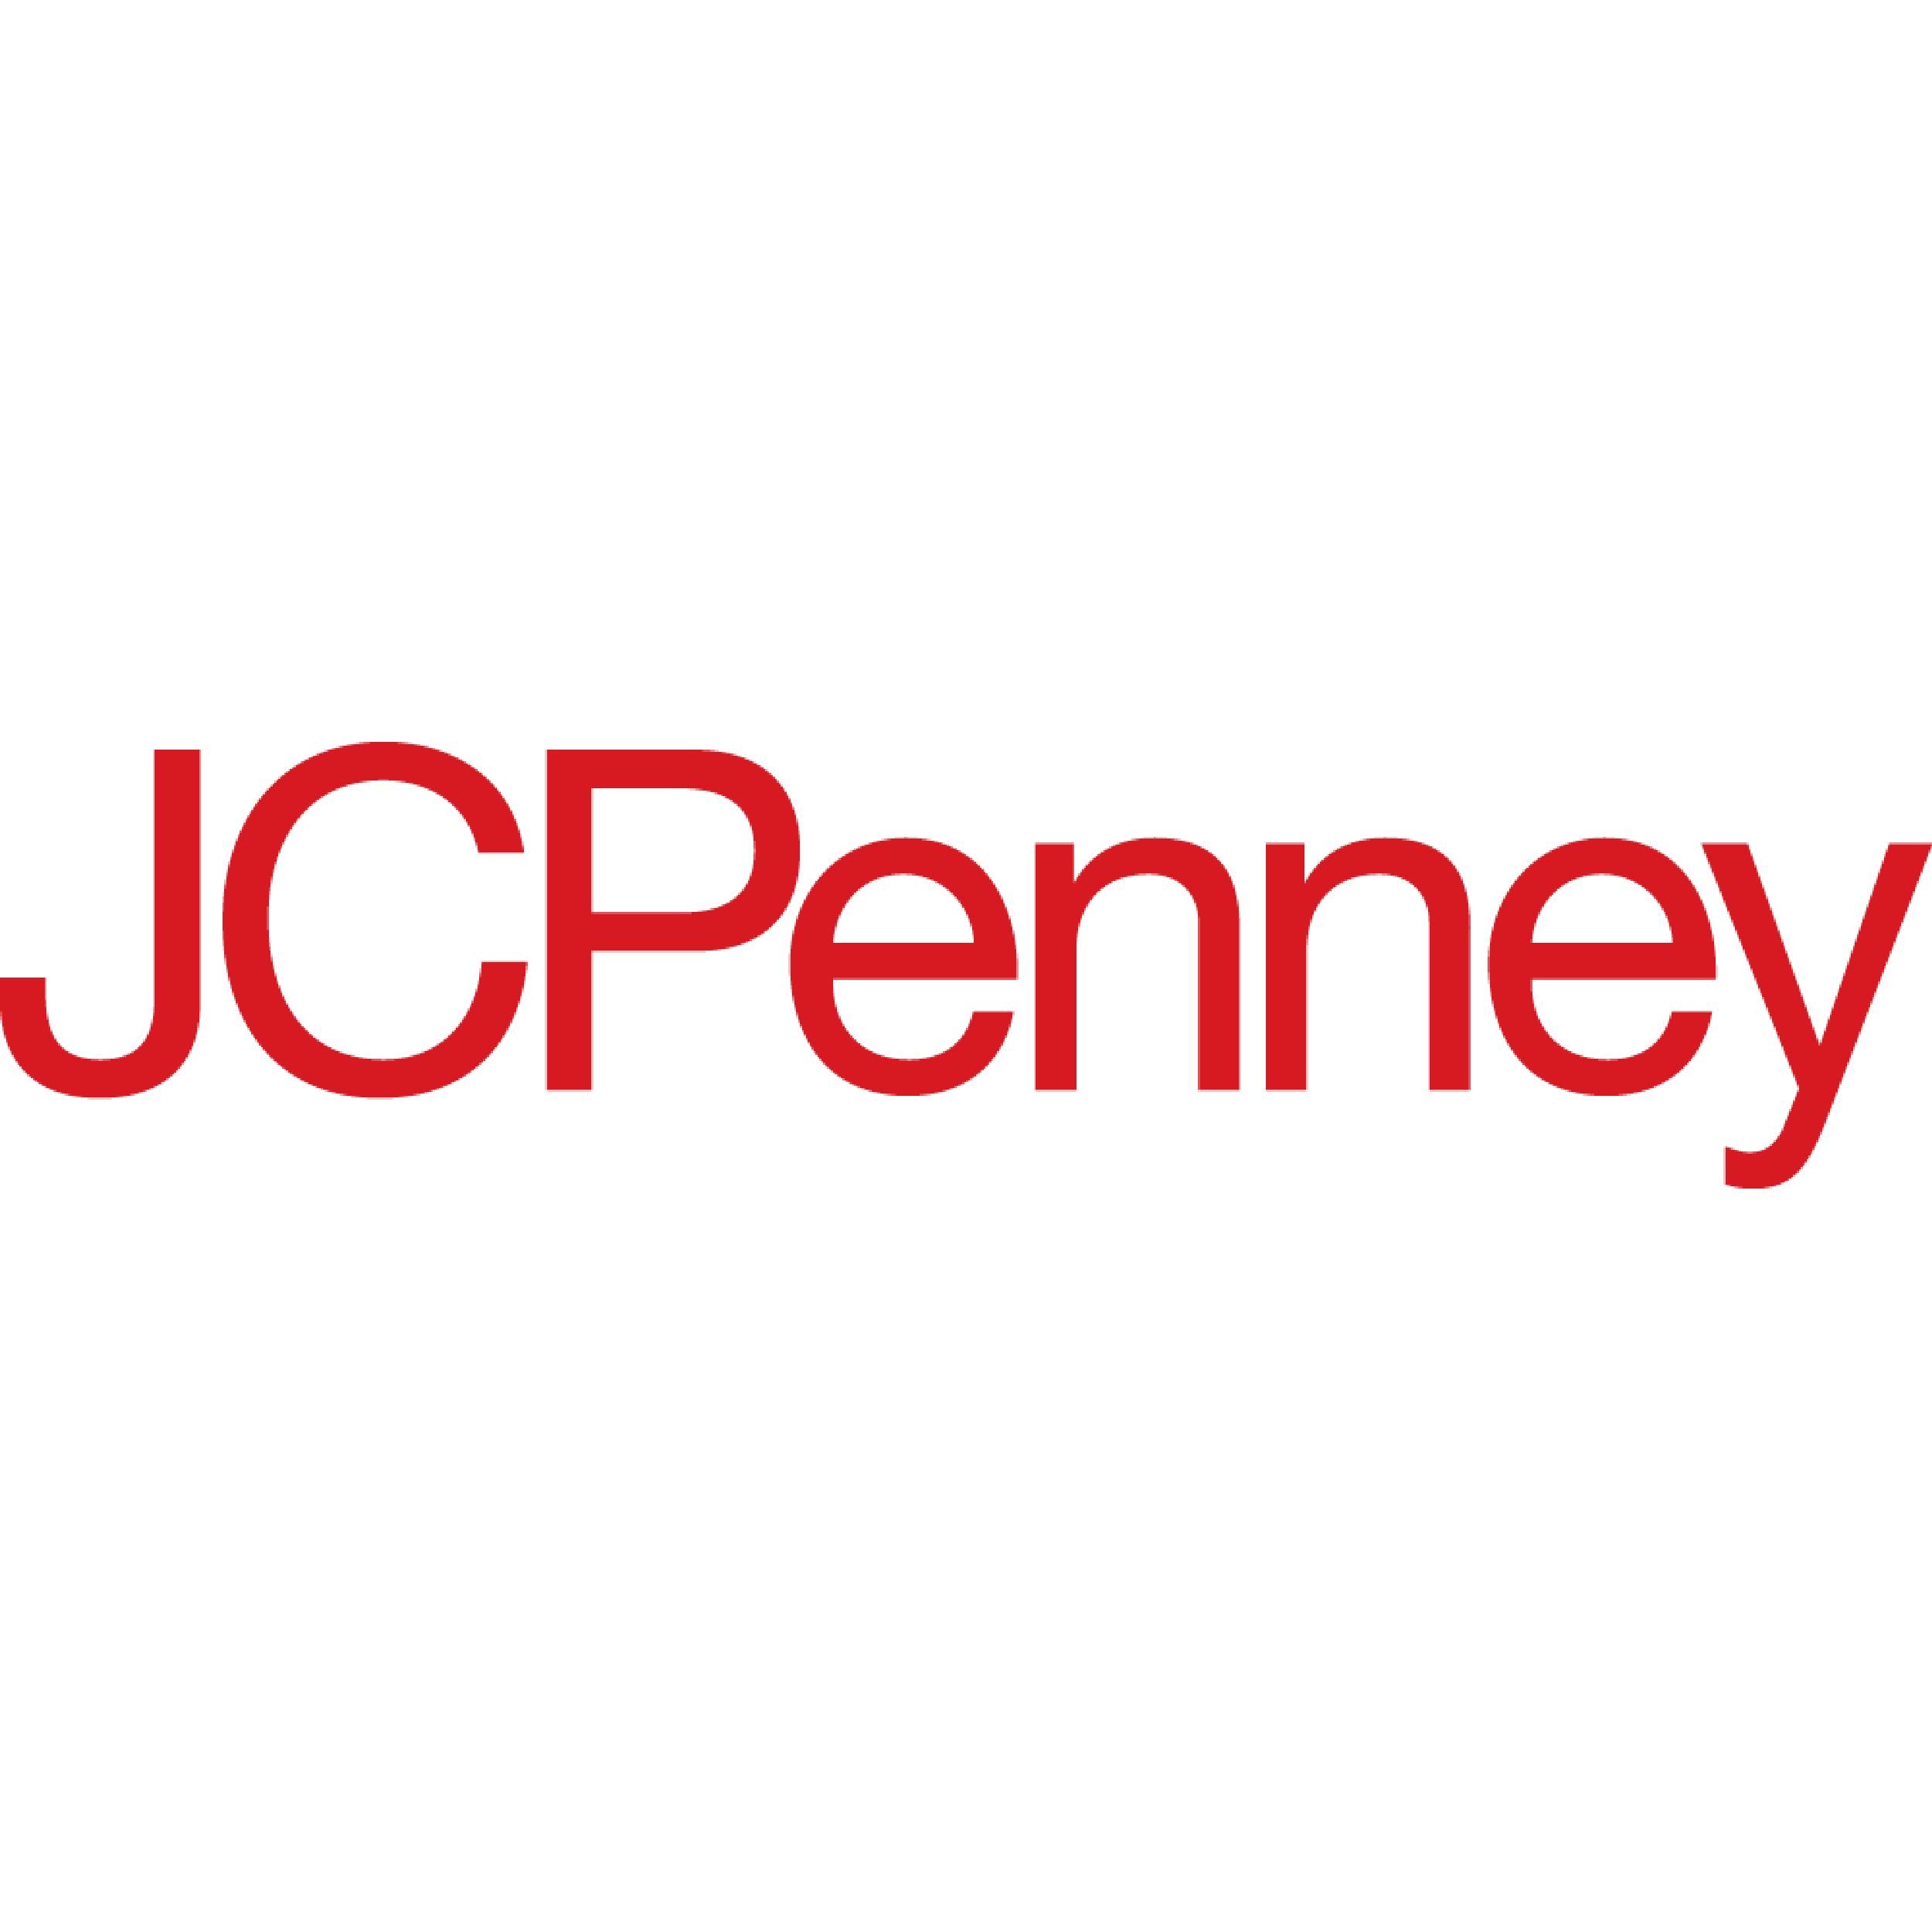 JCPenney - Burnham, PA - Department Stores